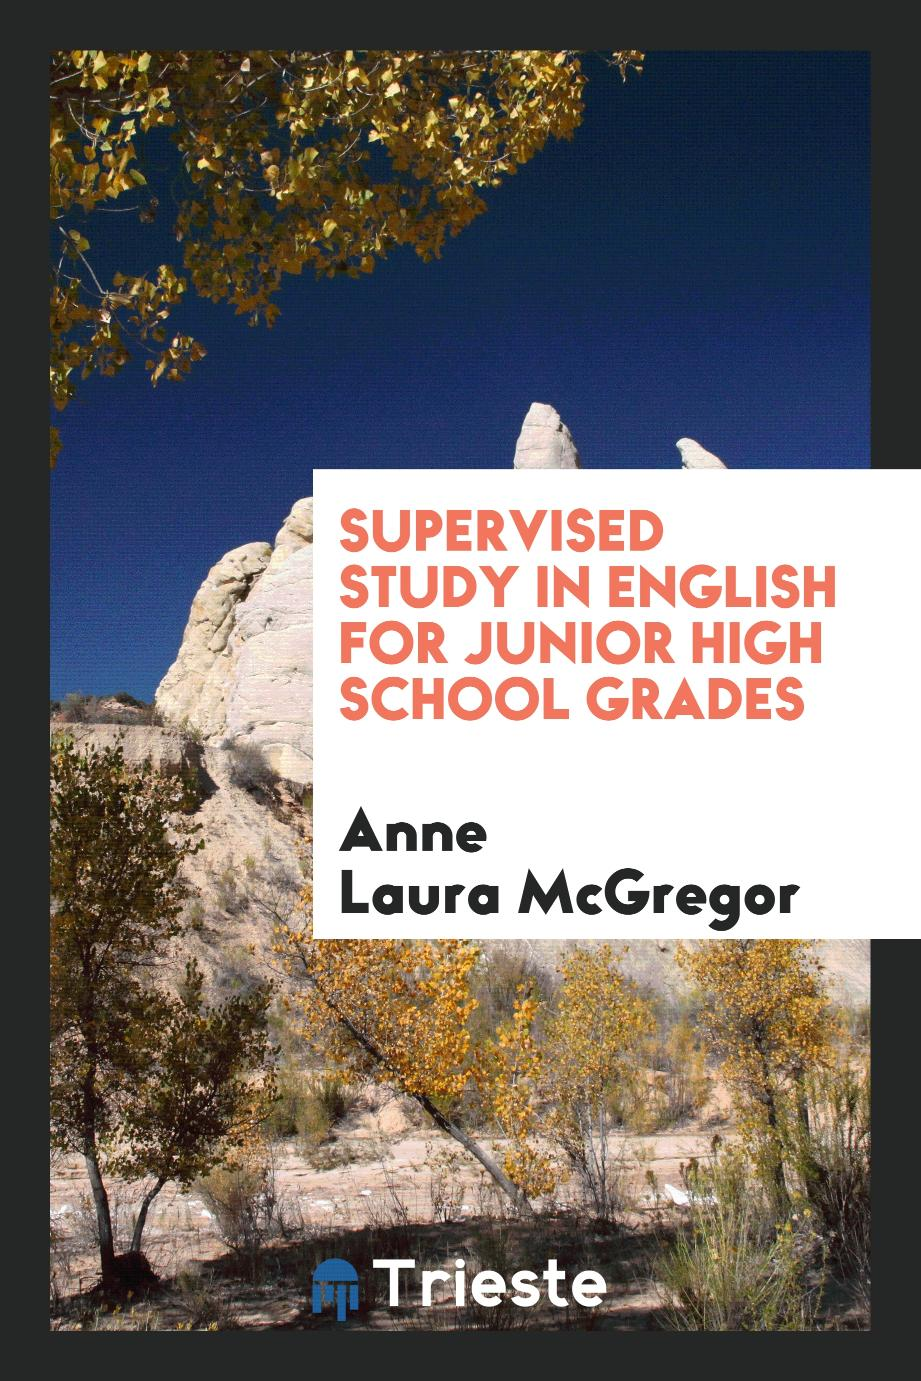 Supervised study in English for junior high school grades